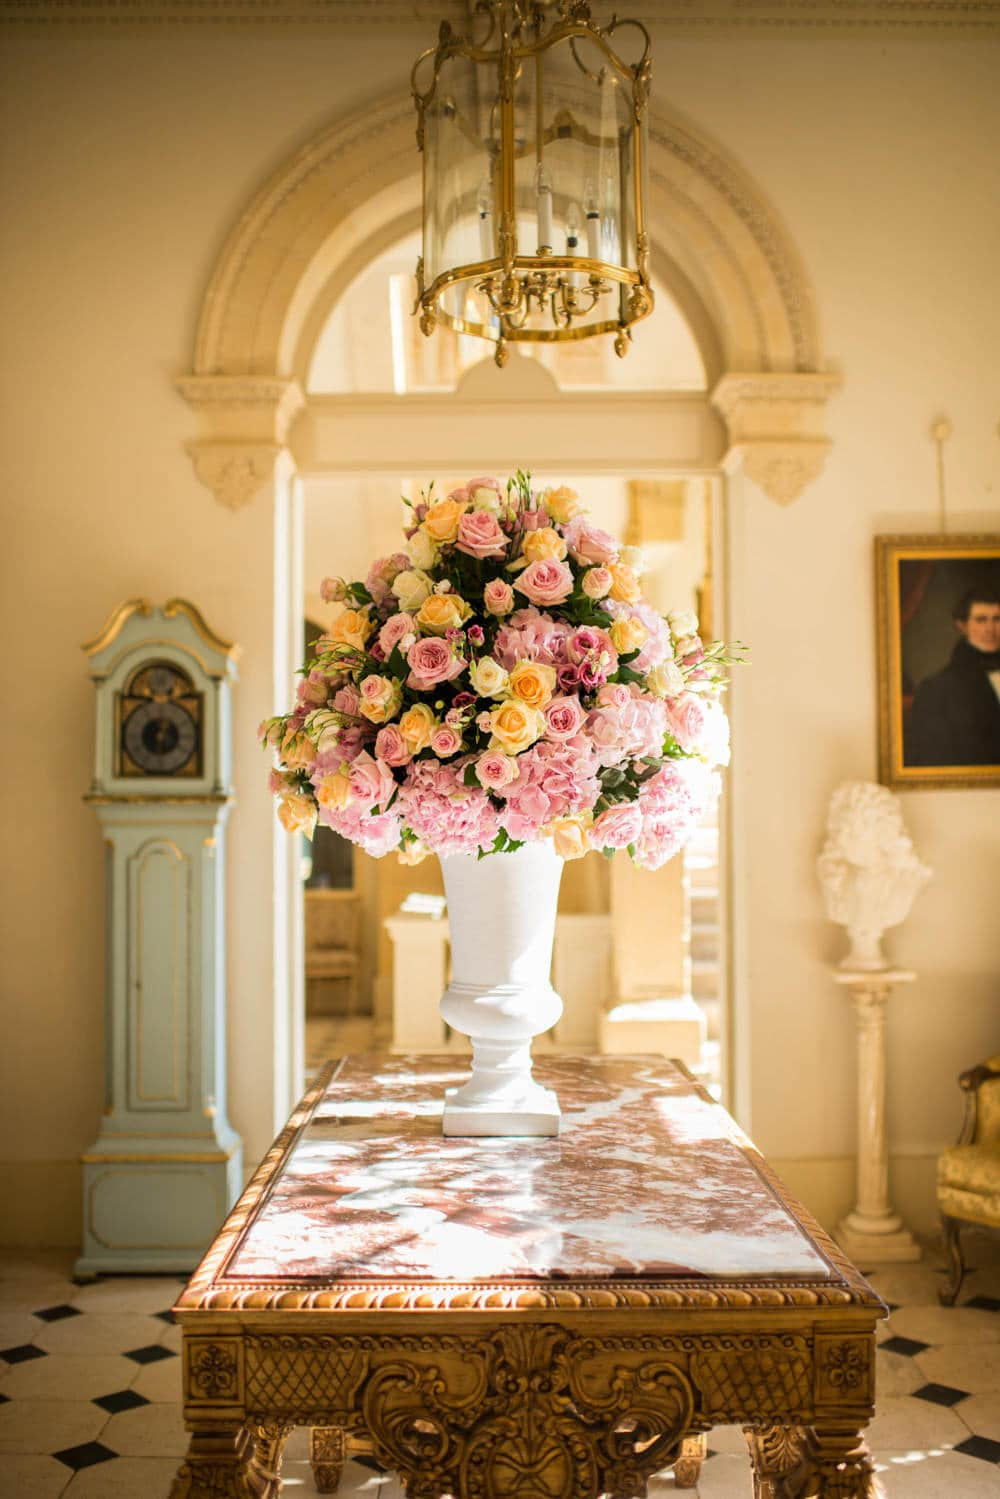 Wedding florist in France, pink and peach roses.